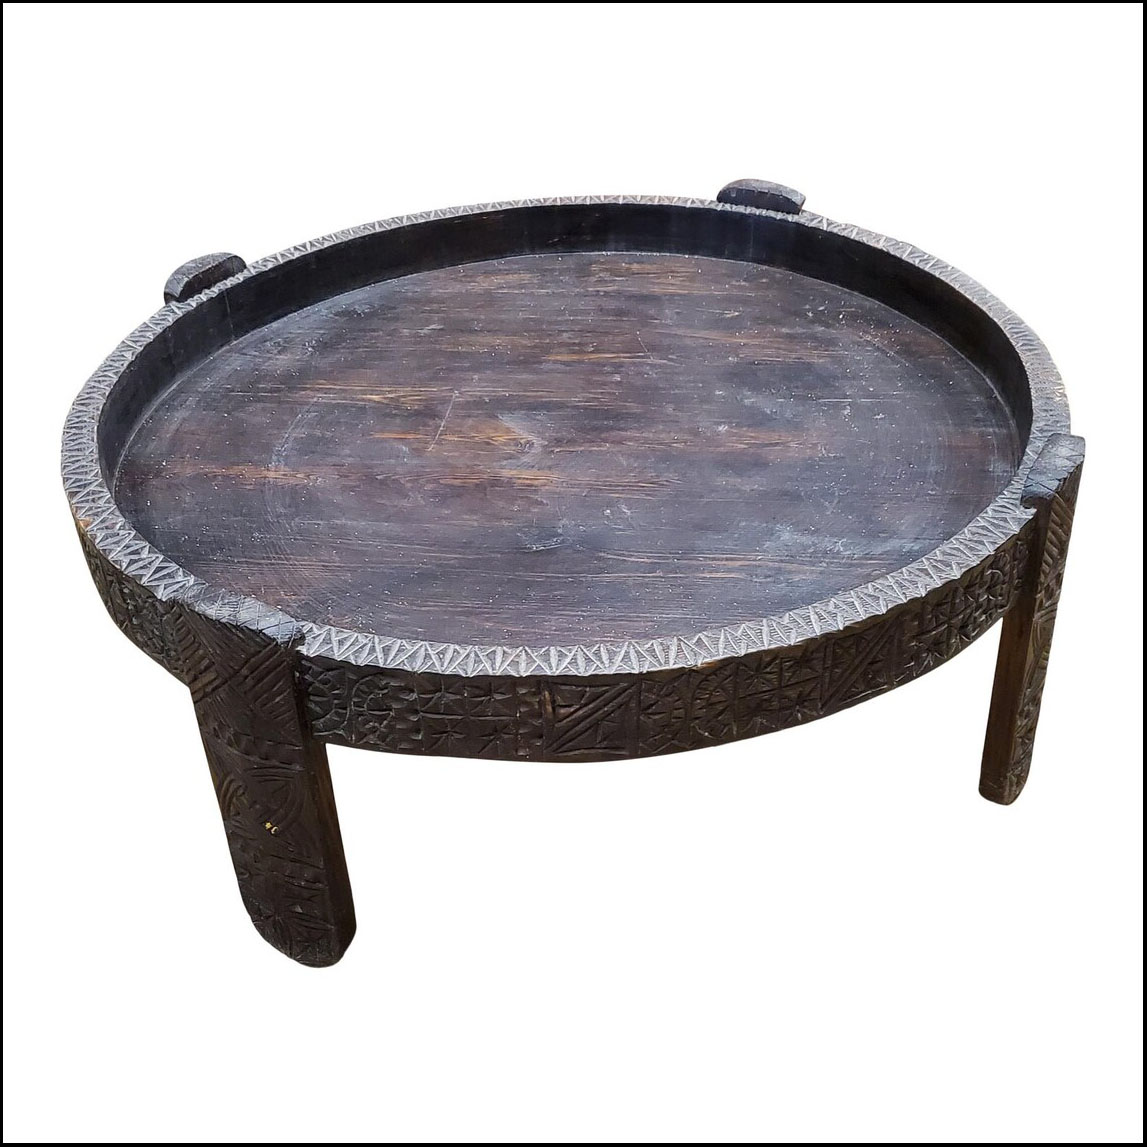 Moroccan wooden coffee table, Tayfour Style